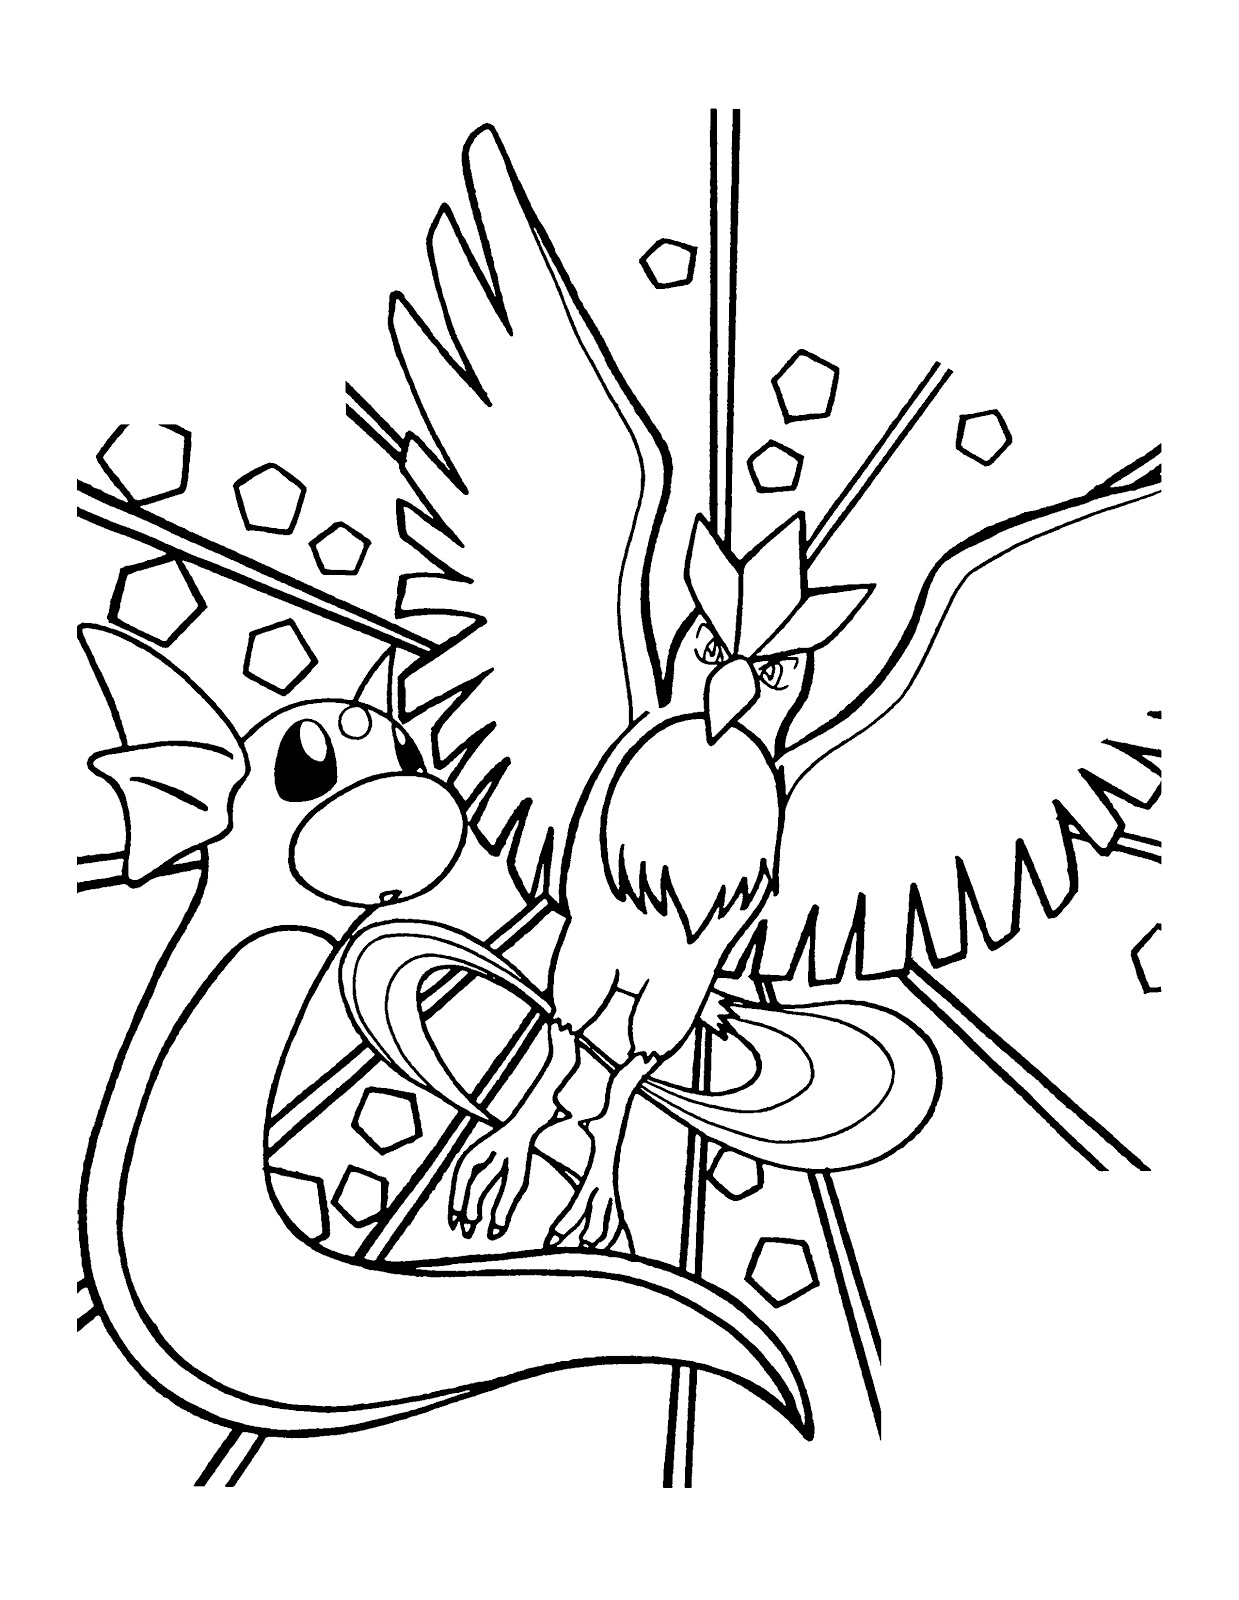 Pokemon Articuno Coloring Pages Printable Free Pokemon